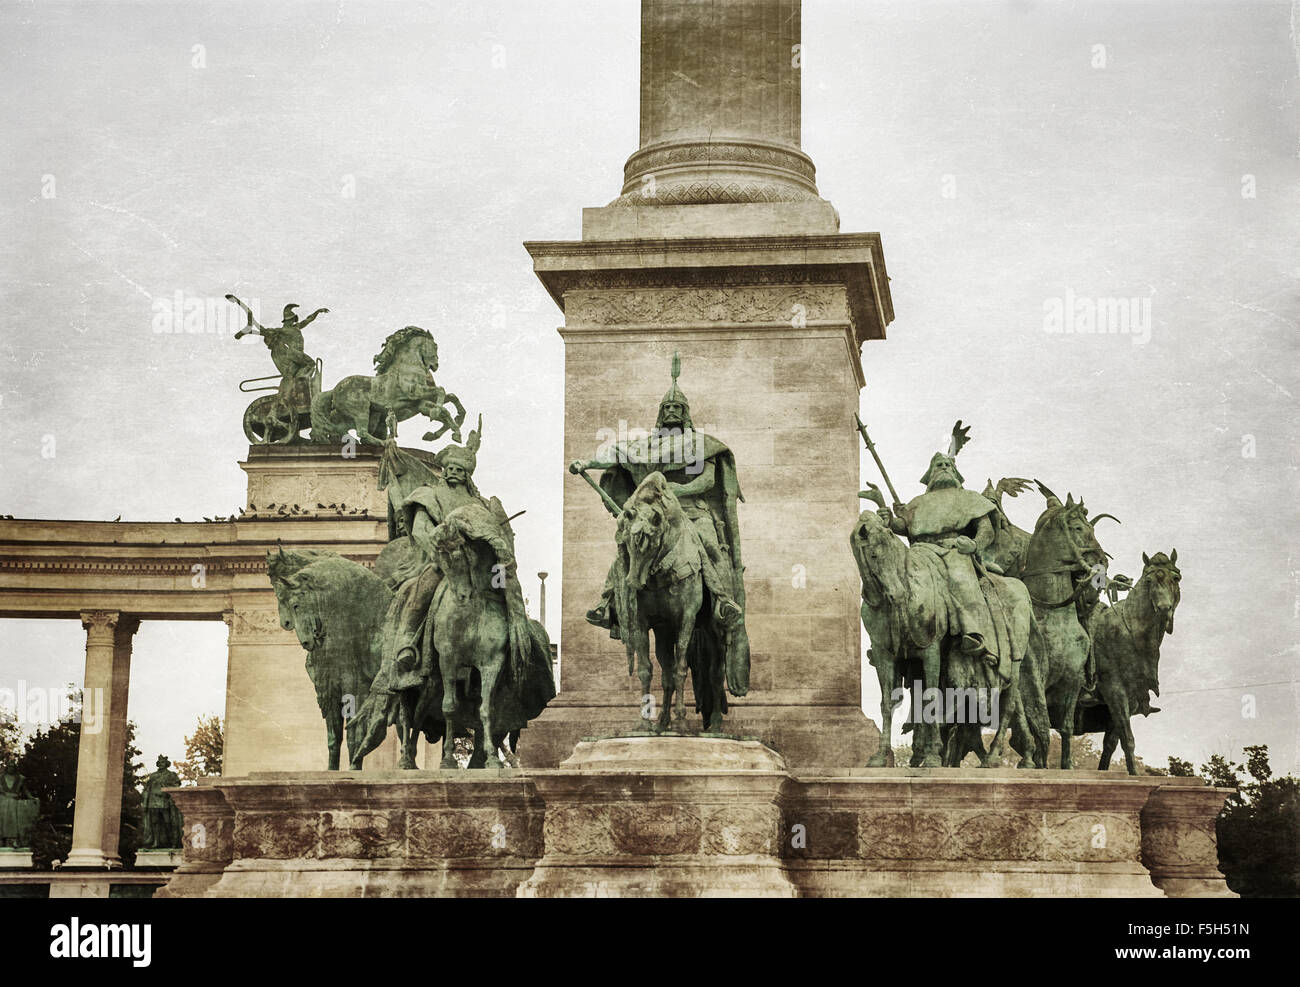 statue hungarian kings square budapest stockfotos statue hungarian kings square budapest. Black Bedroom Furniture Sets. Home Design Ideas